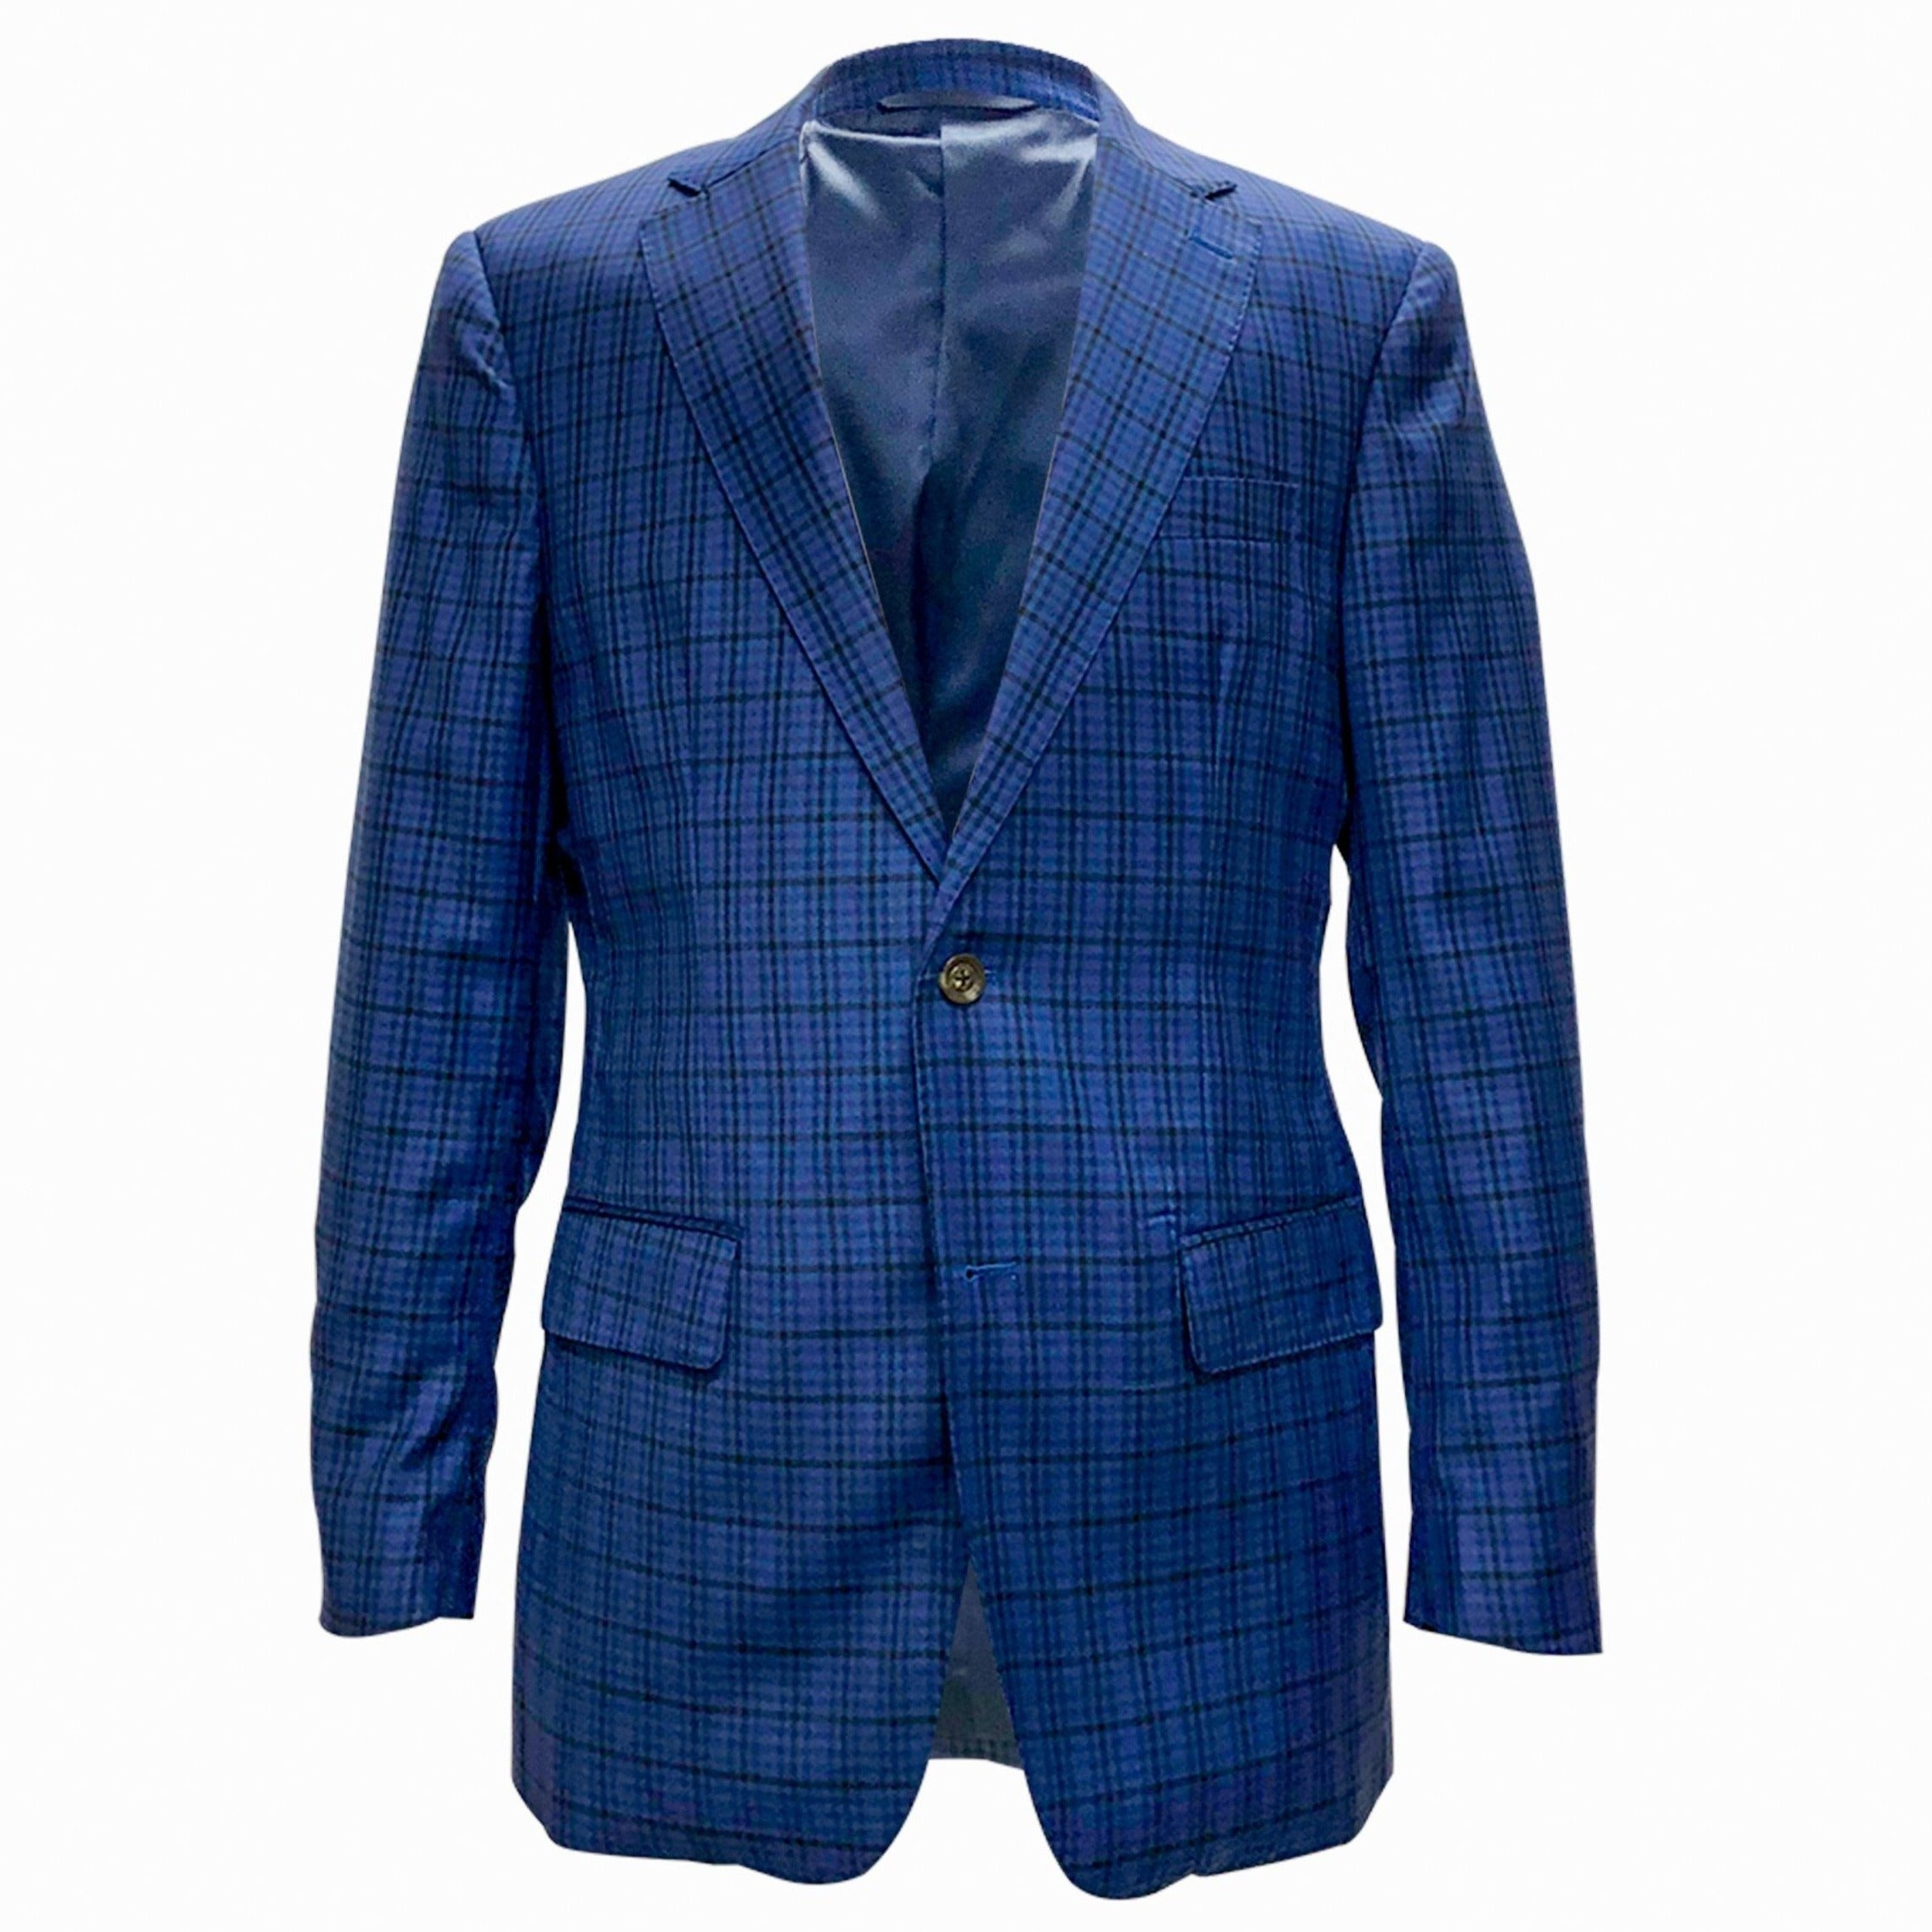 The New Blue Multi Plaid Sport Coat